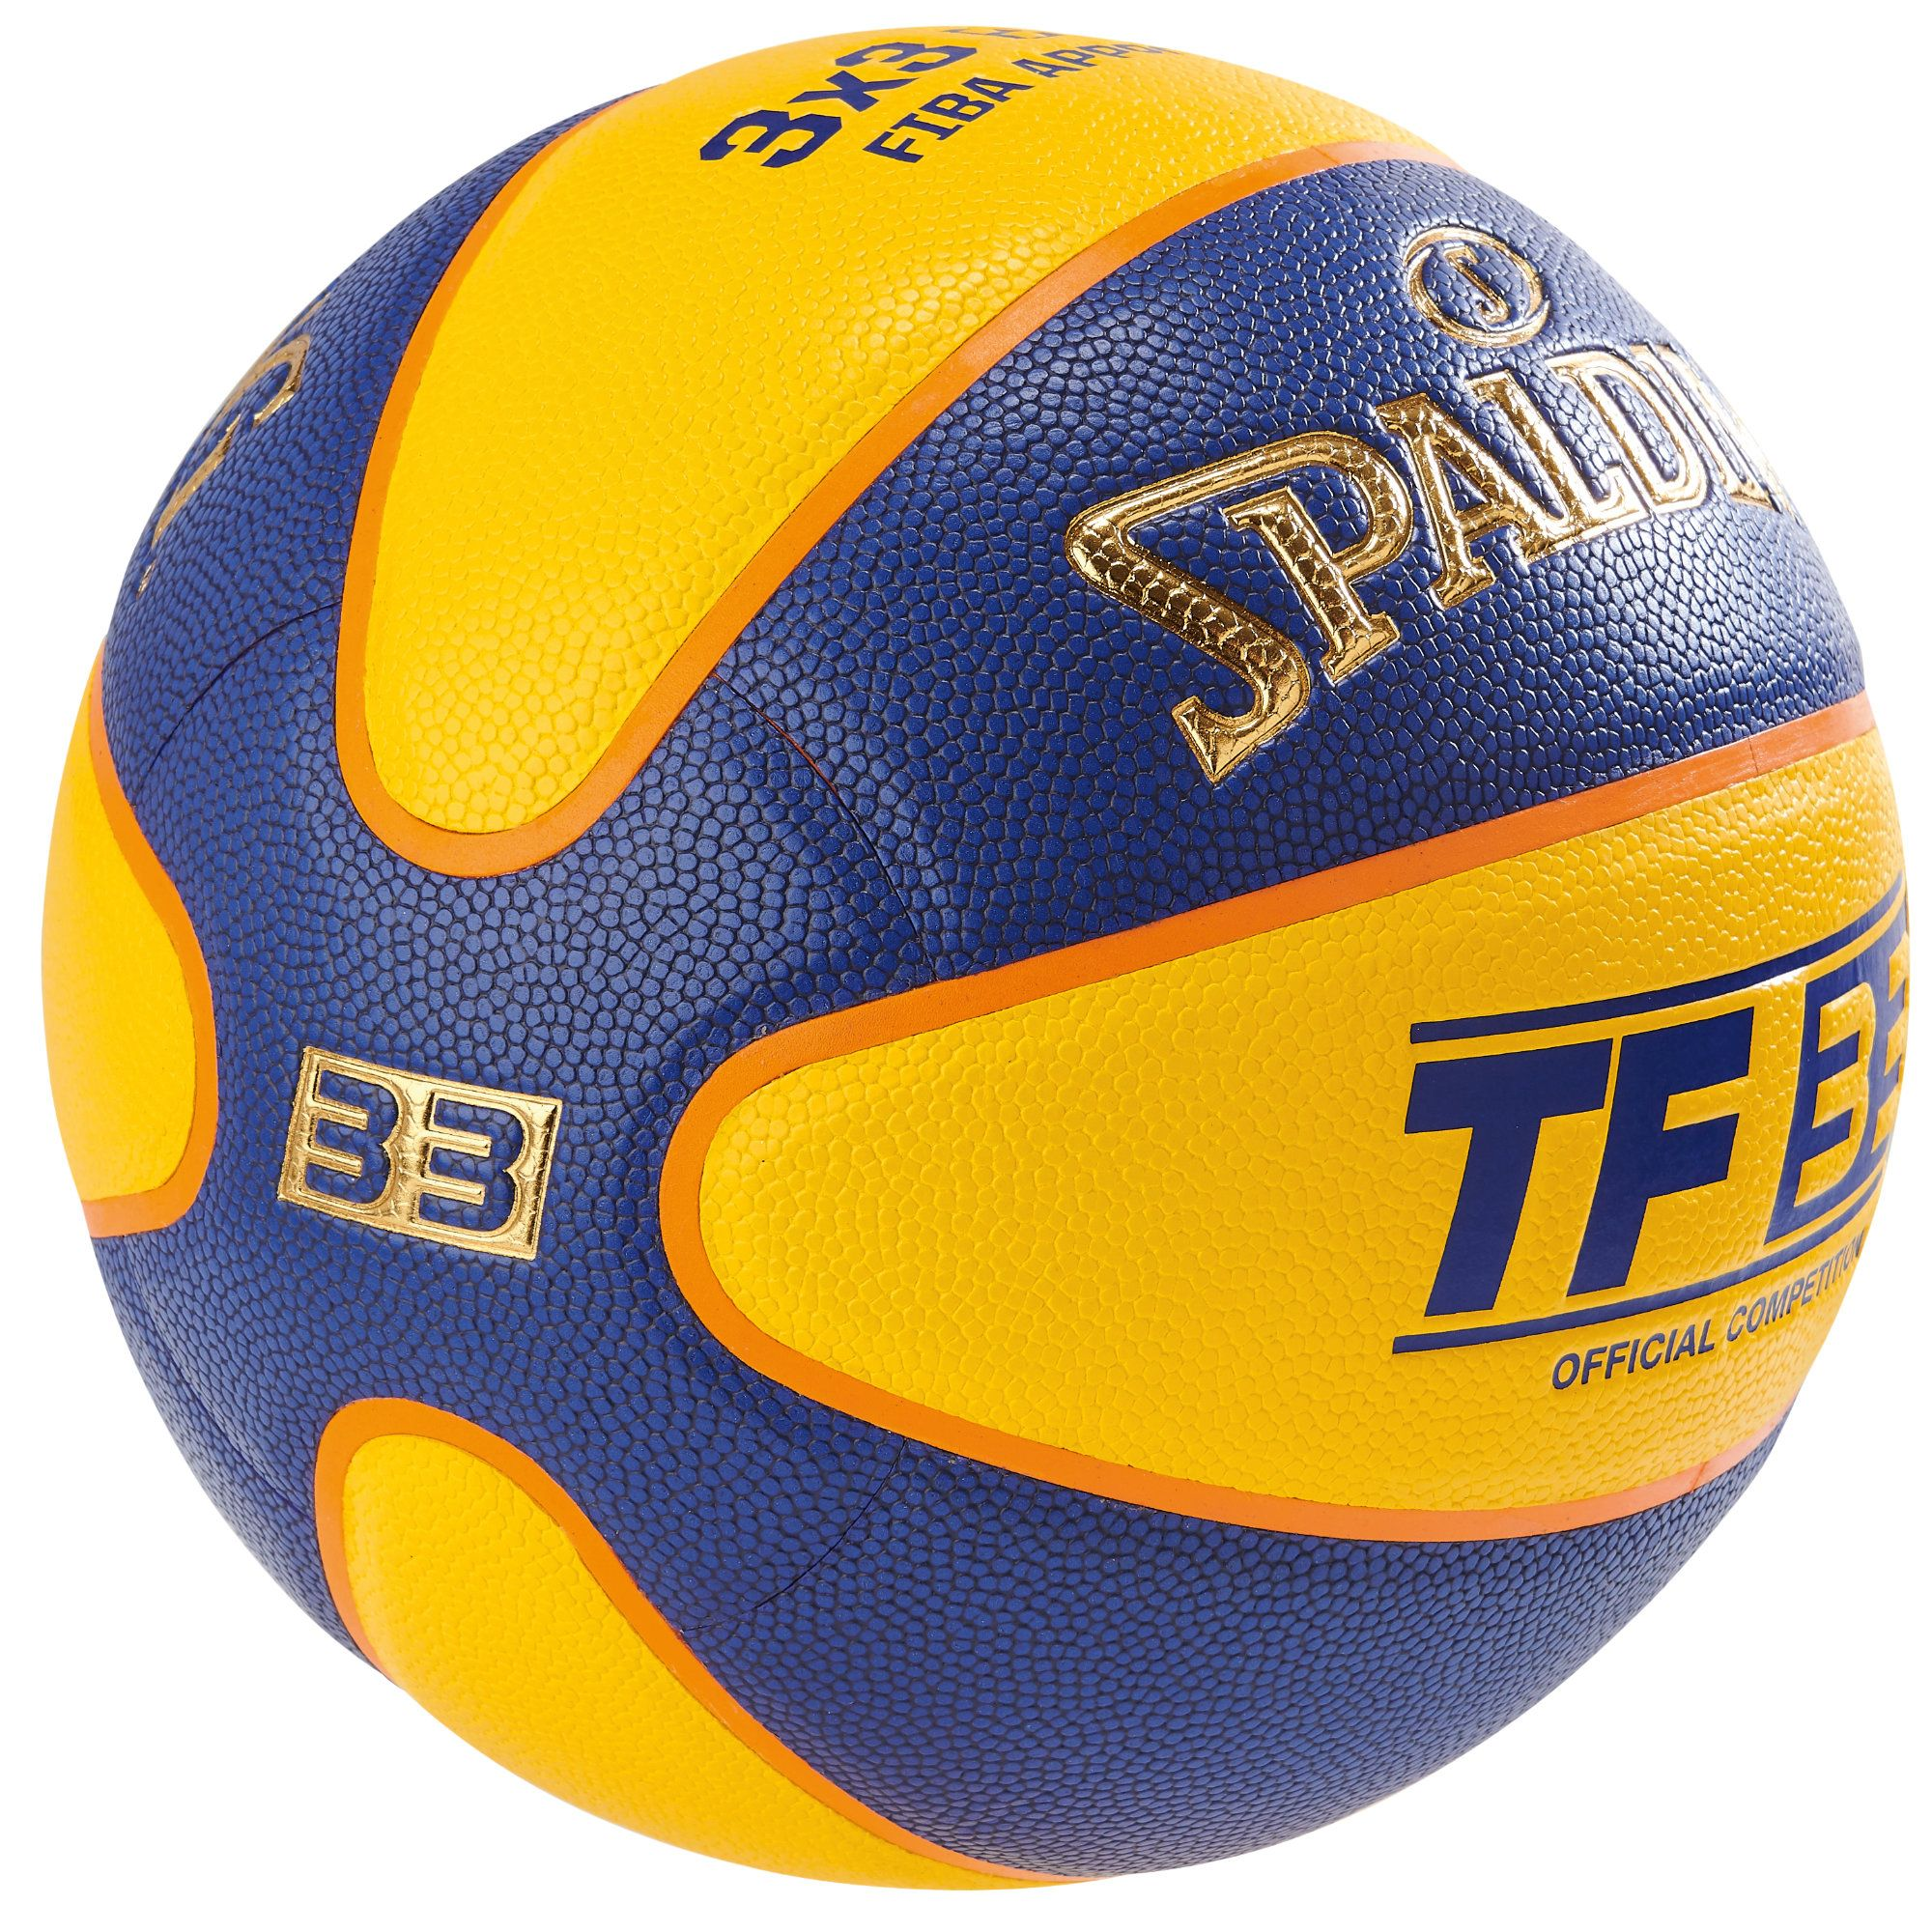 Fitness Design Gym Gym: Spalding TF 33 FIBA 3x3 Official Game Indoor And Outdoor